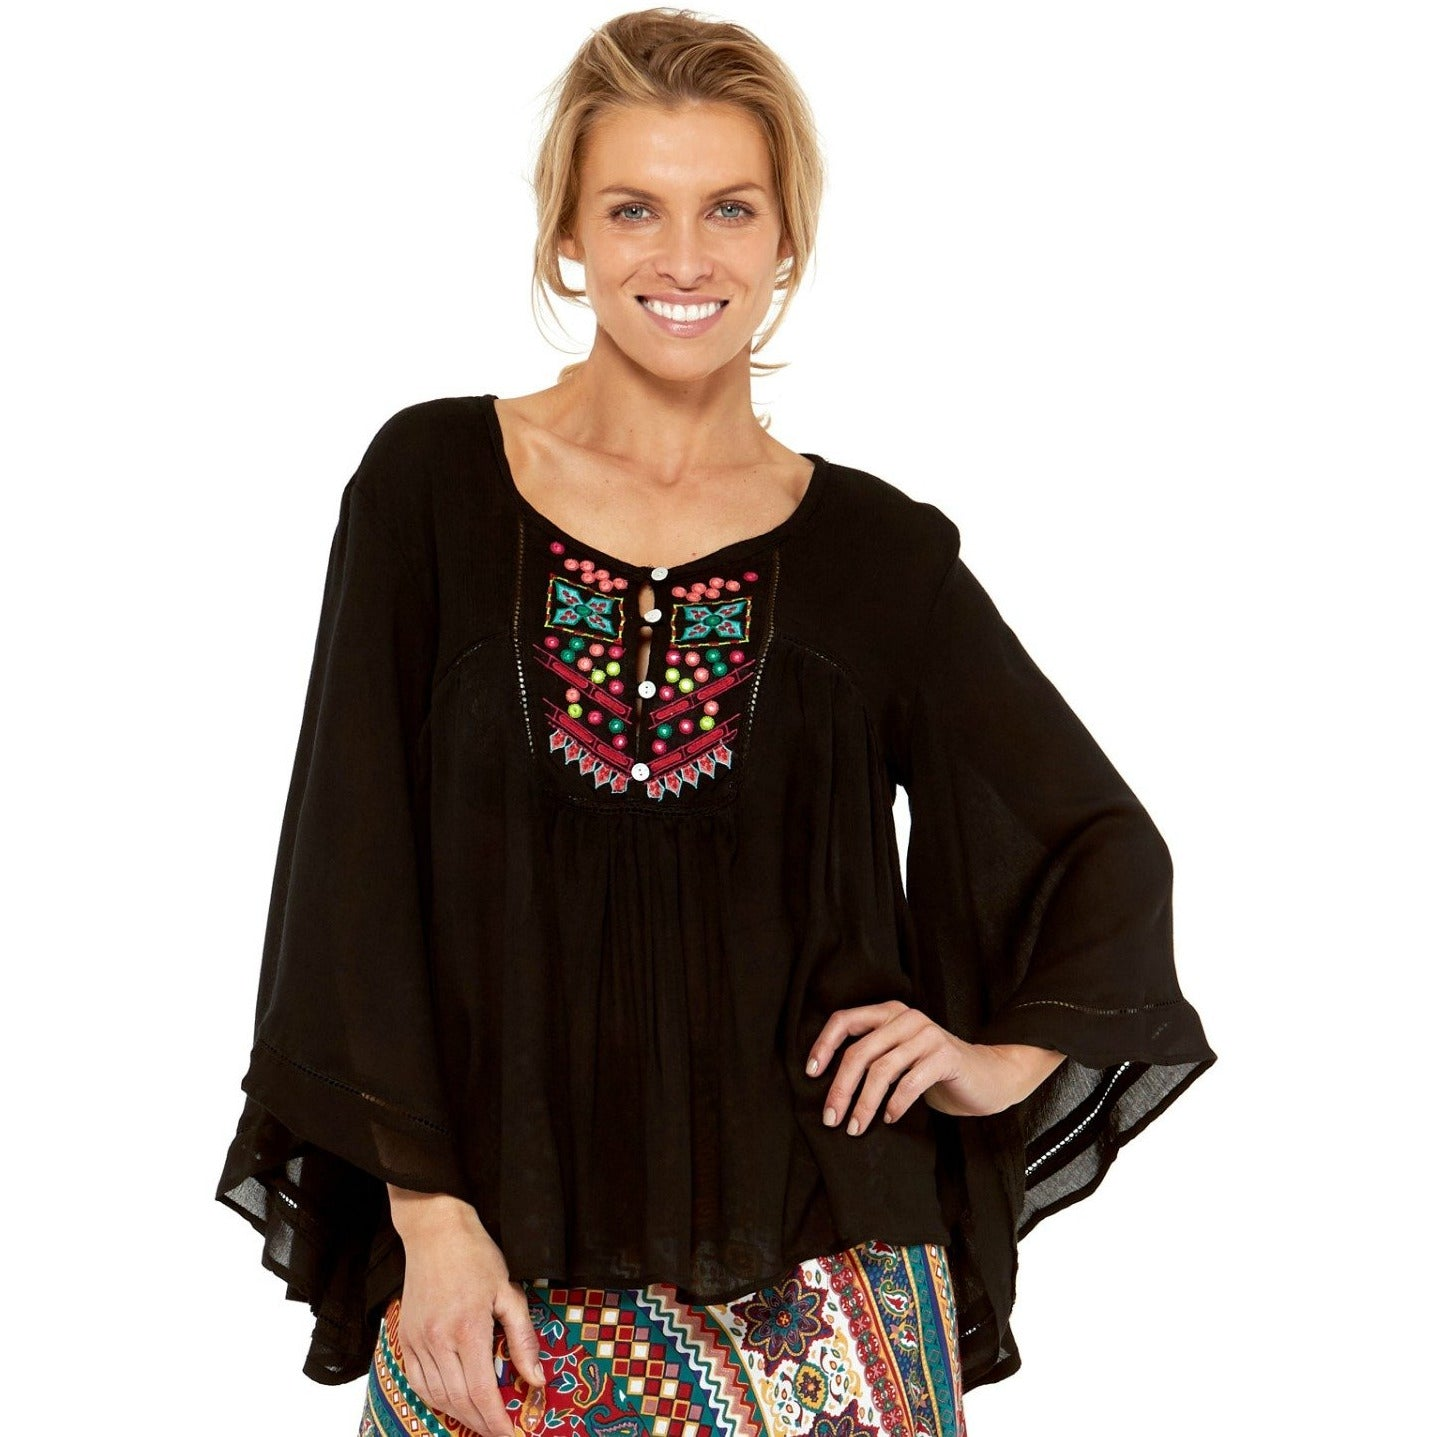 Rasaleela Sidney Top L114 in Black